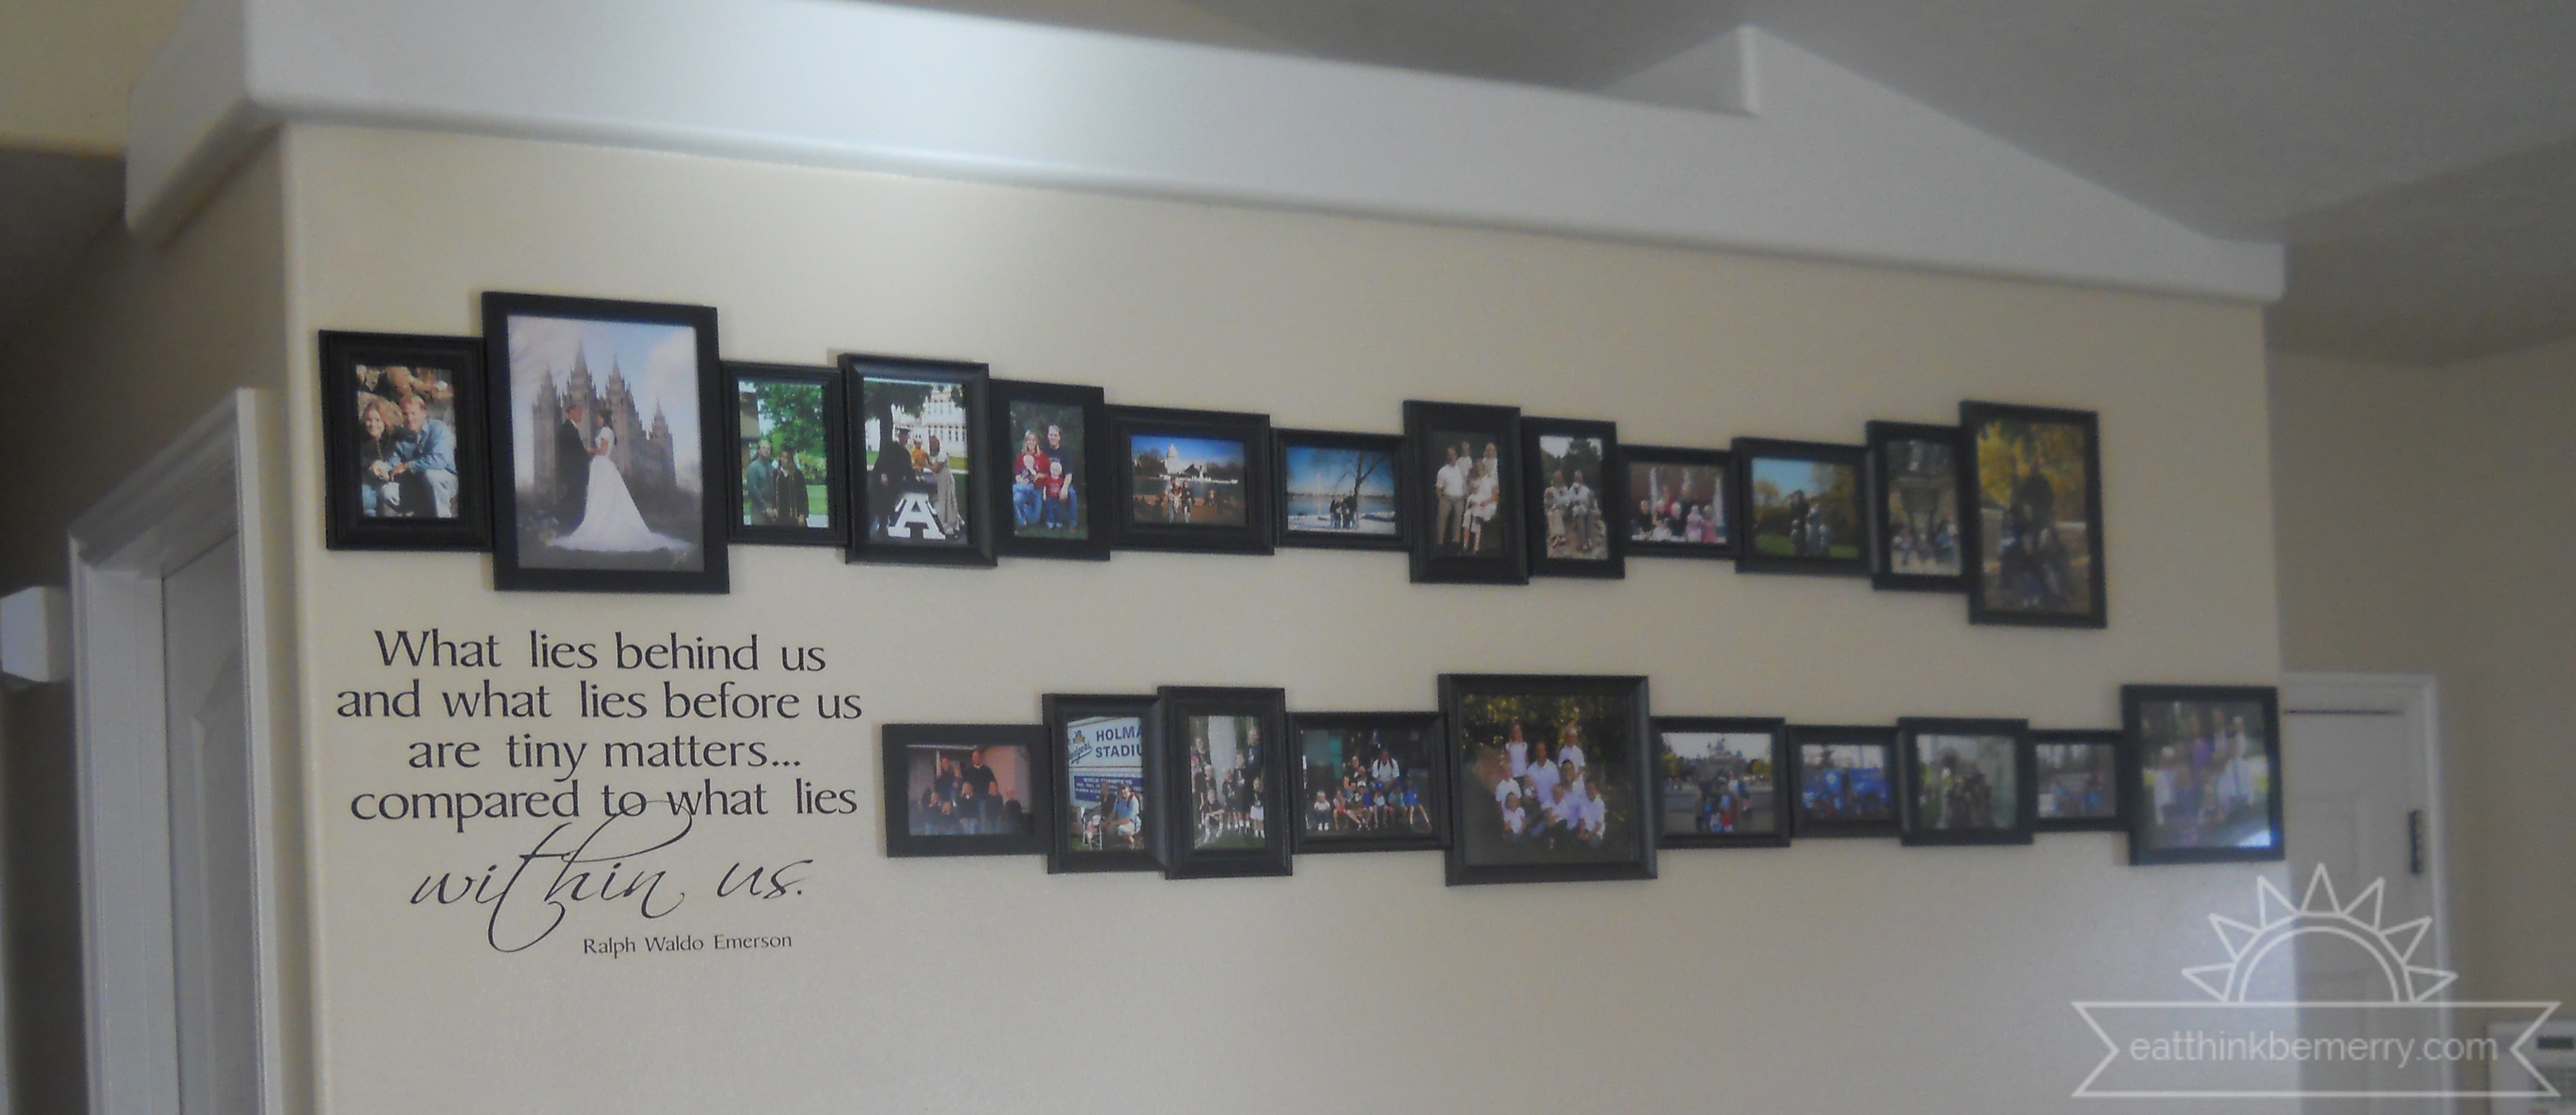 Perspective Project - Family Photo Display